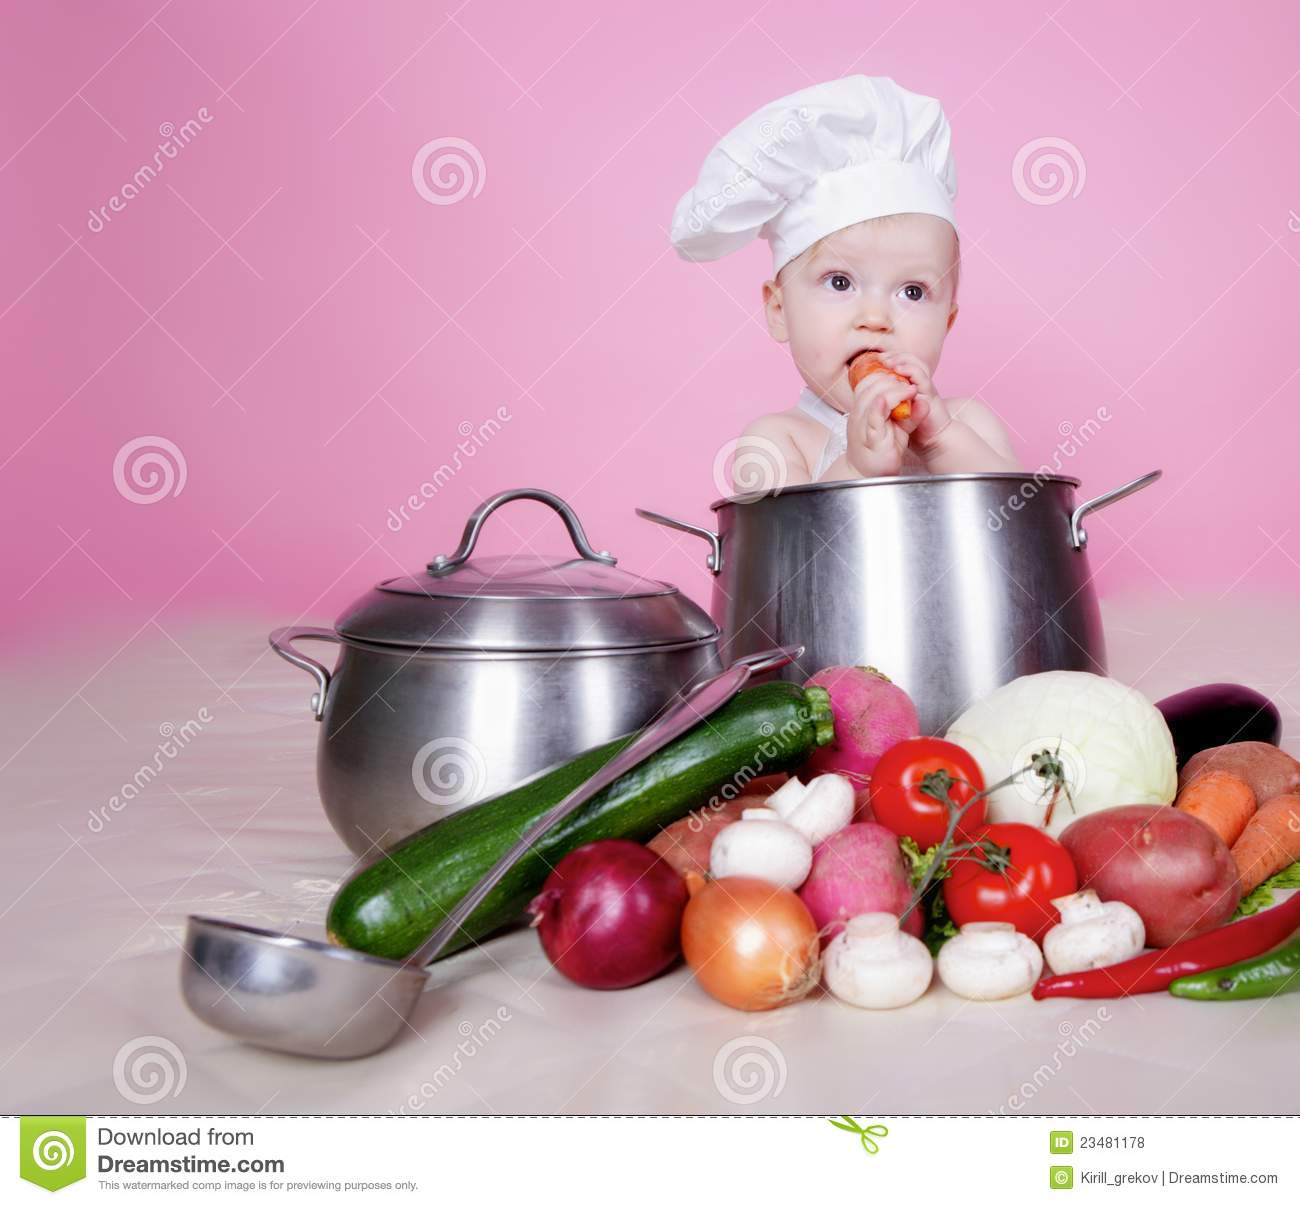 how to cook a baby